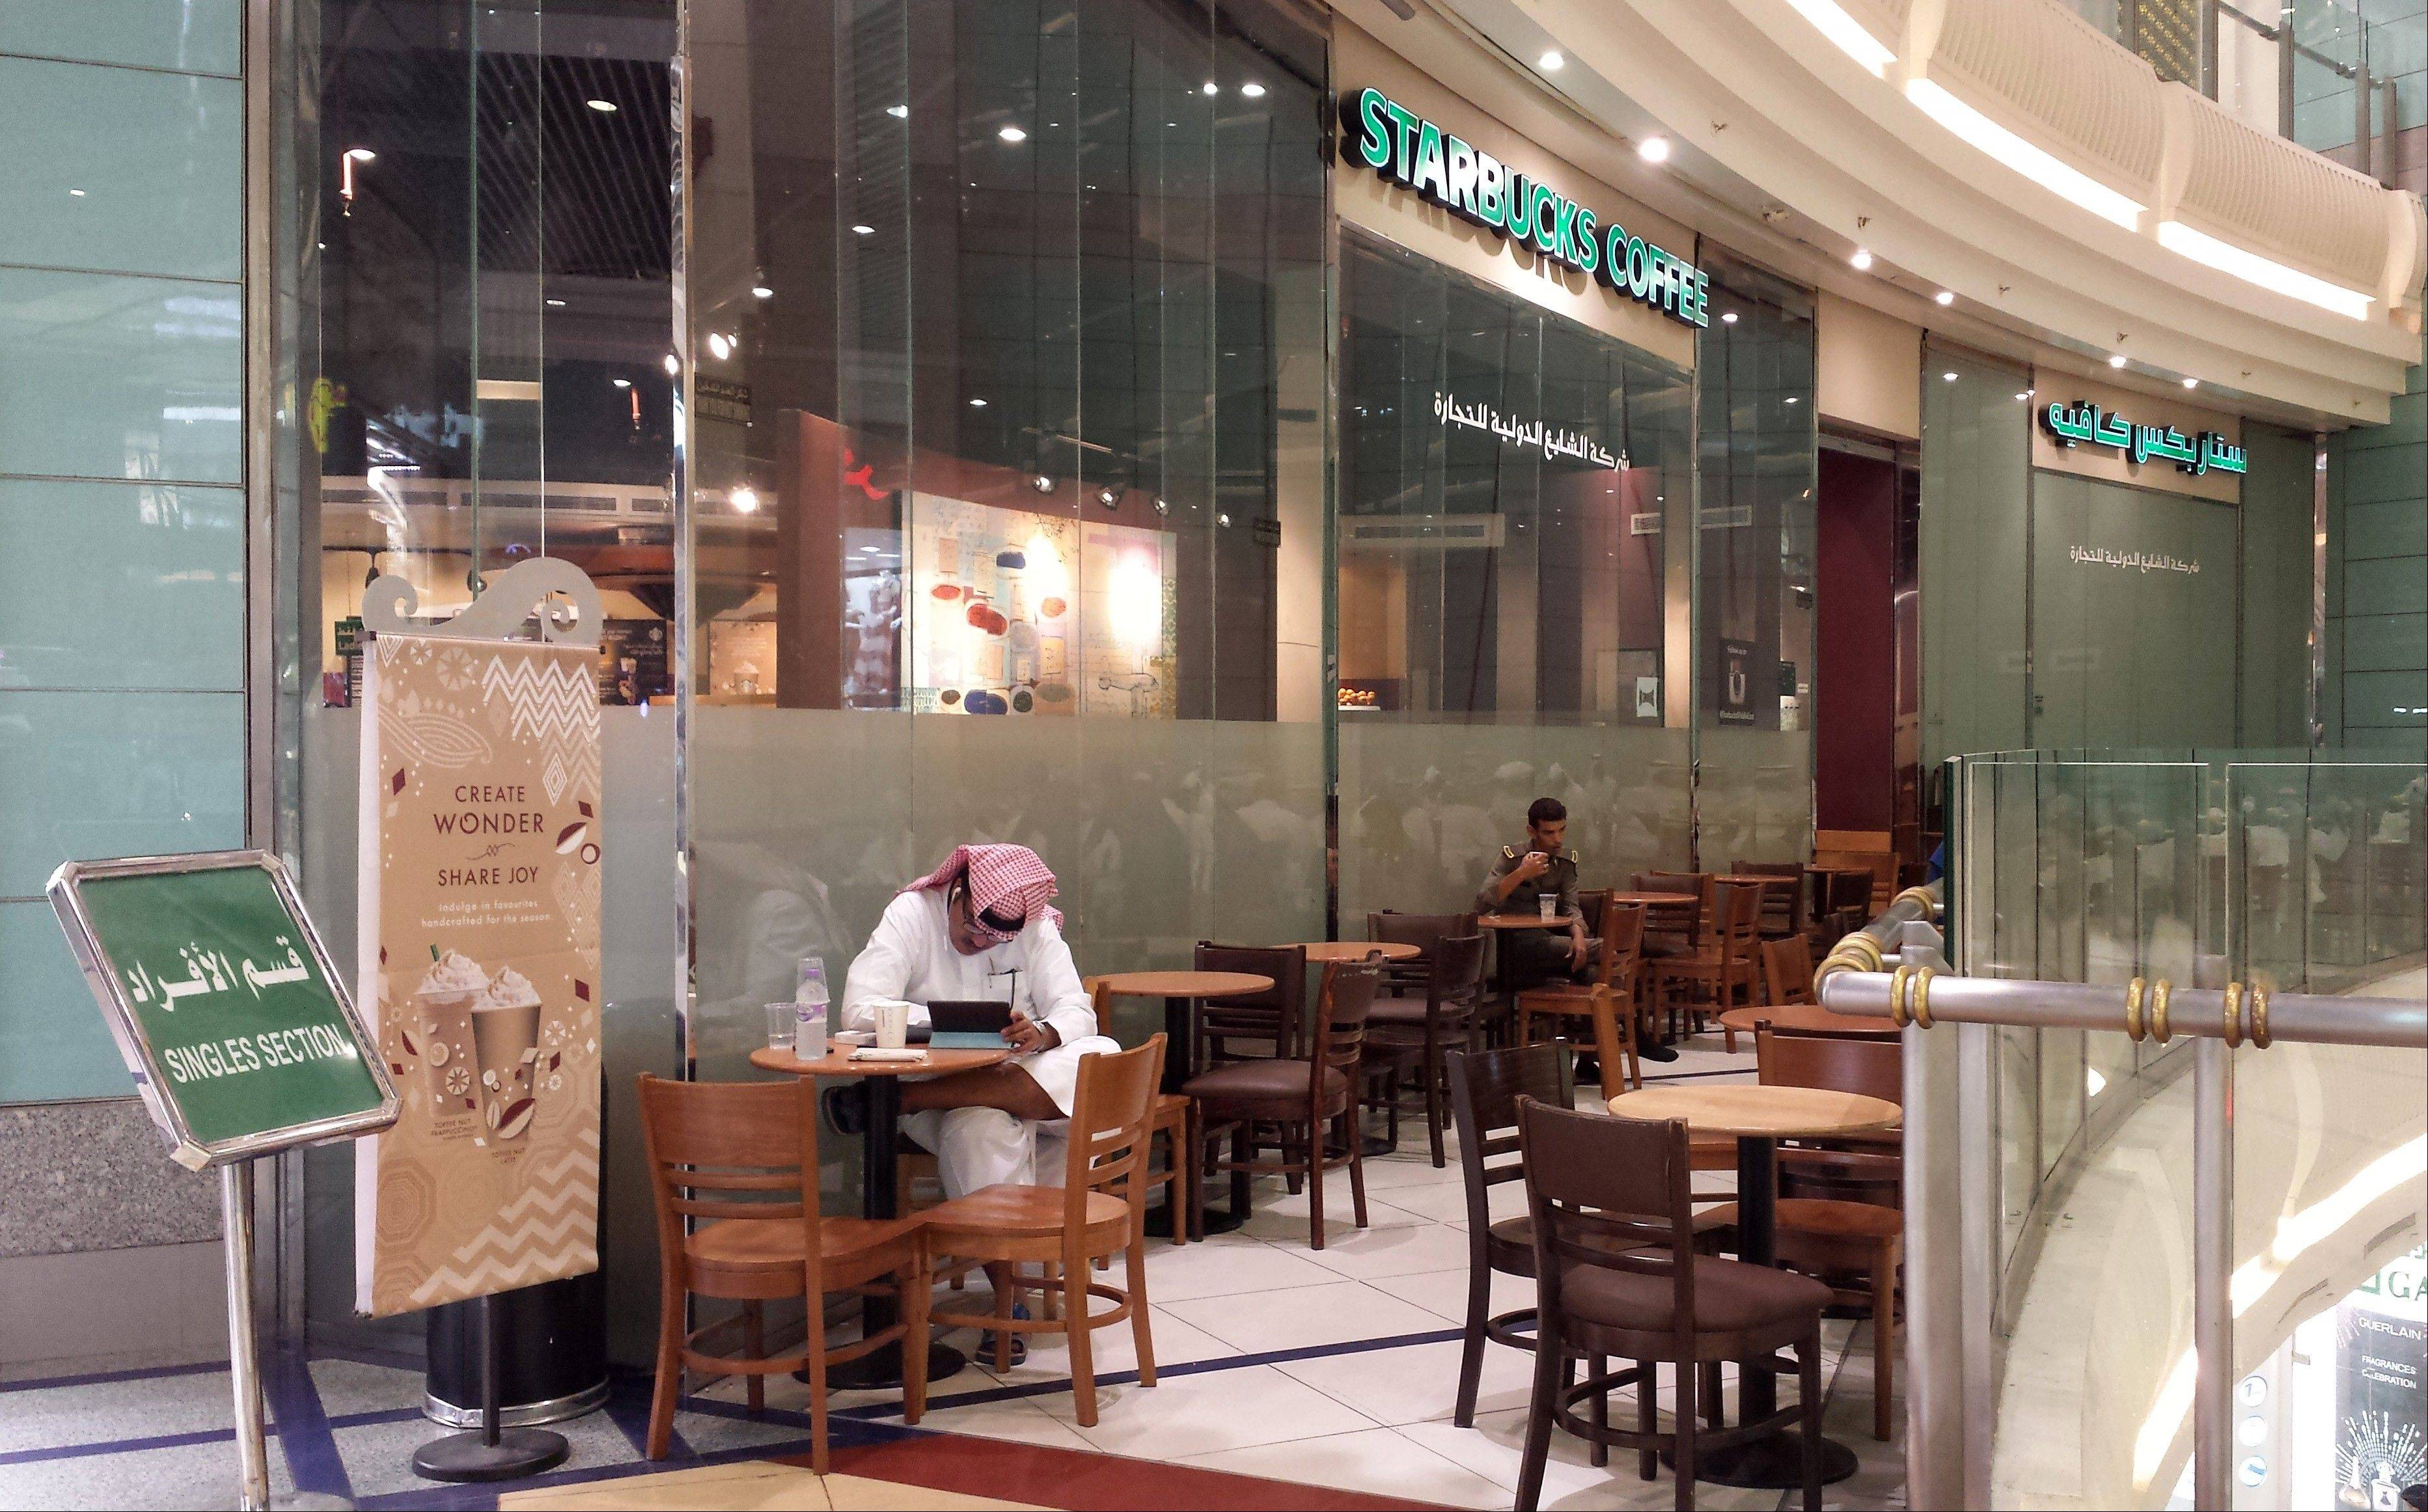 This is the singles� section, where men have separate entrances and seating areas from women, at a Starbucks cafe in Mecca, Saudi Arabia. Segregation of the sexes in Saudi Arabia extends beyond campuses and into nearly every aspect of daily activity.